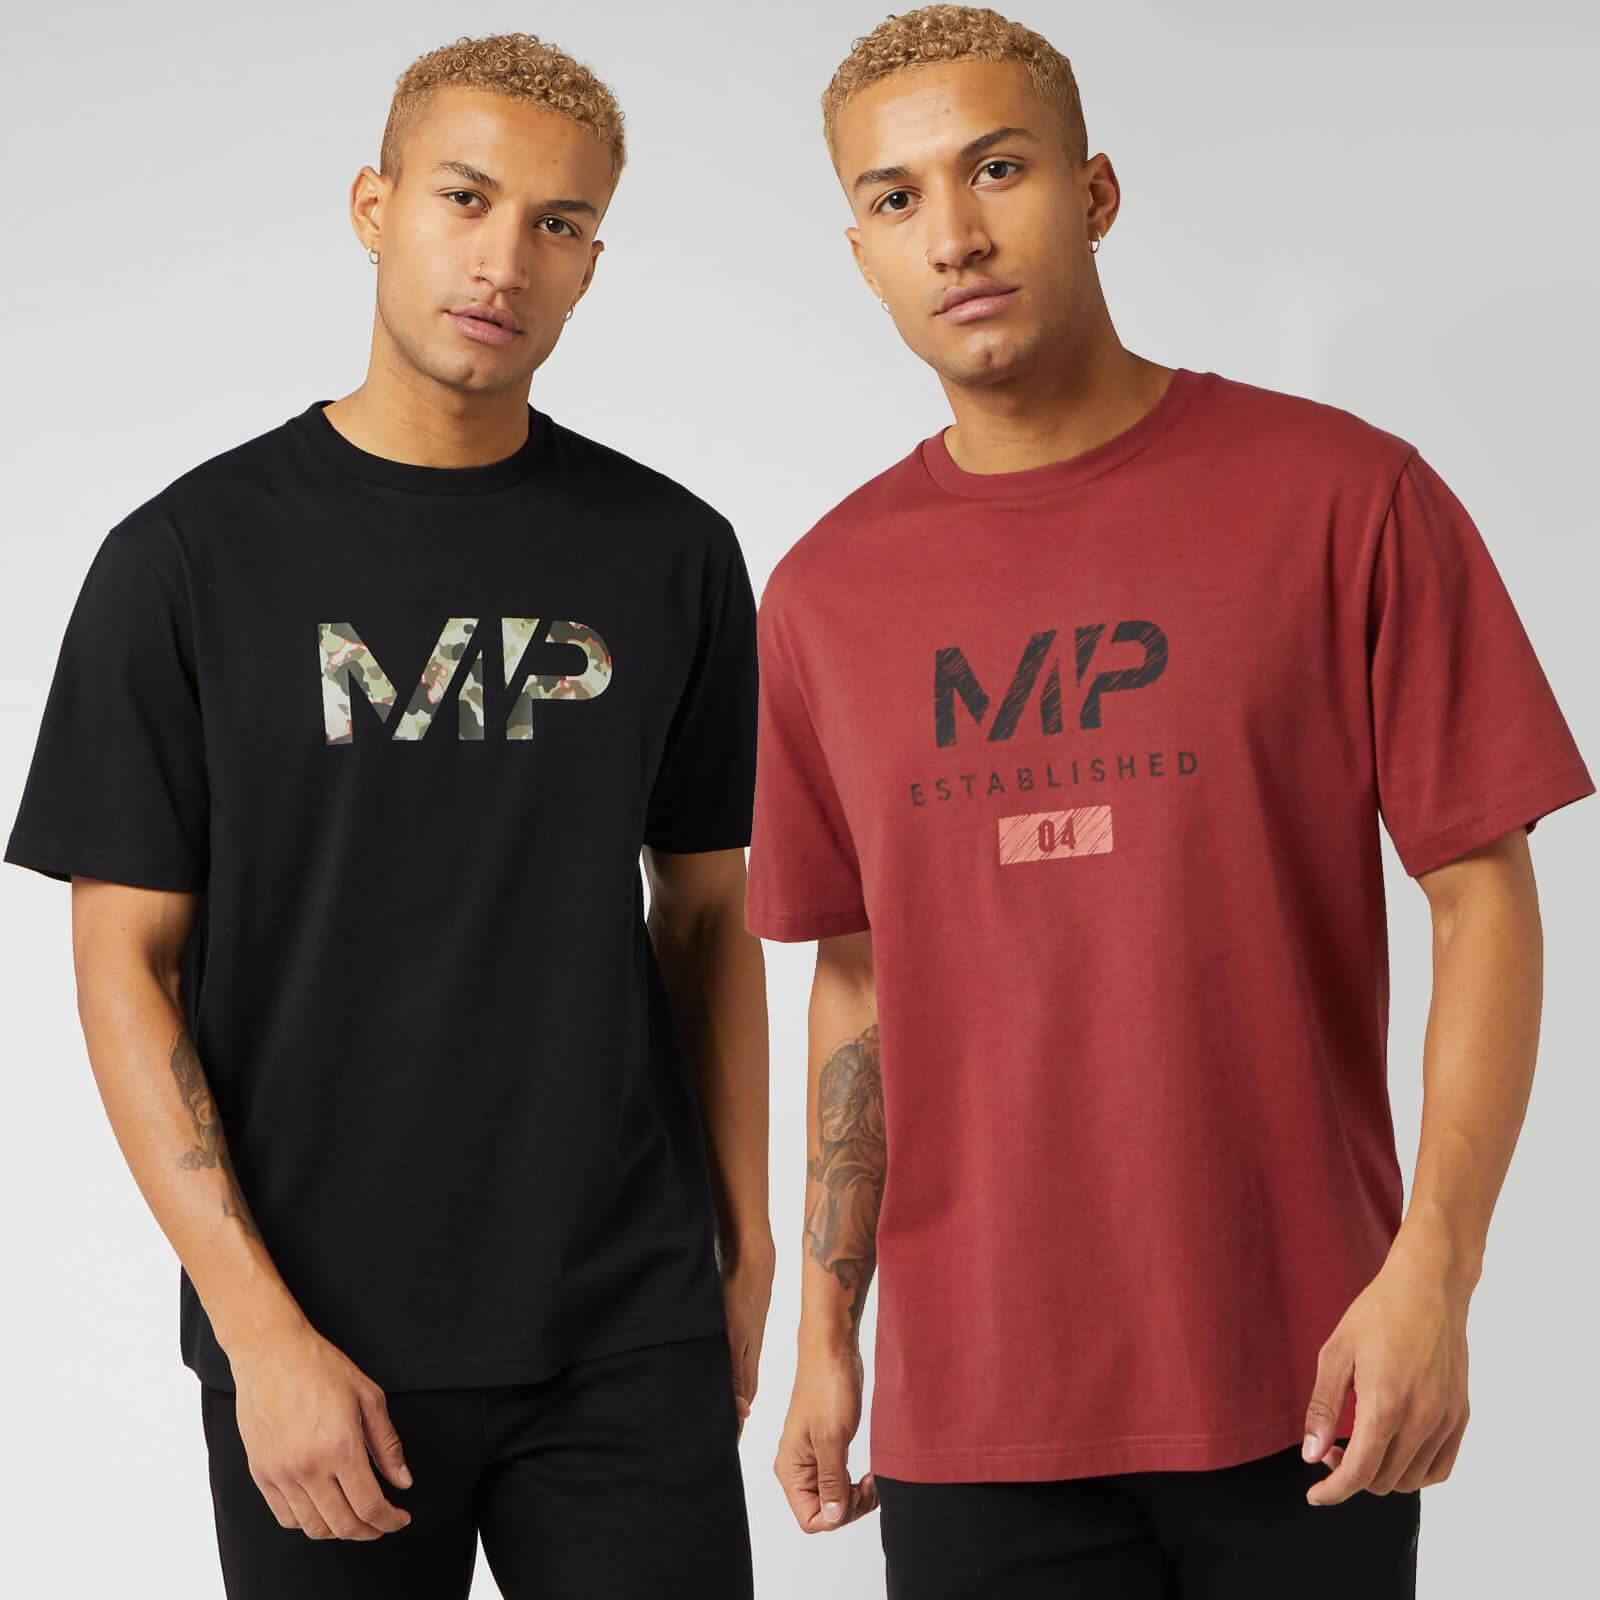 Myprotein Black Friday Limited Edition Graphic T-Shirt (2 Pack) - Black/Paprika - XS